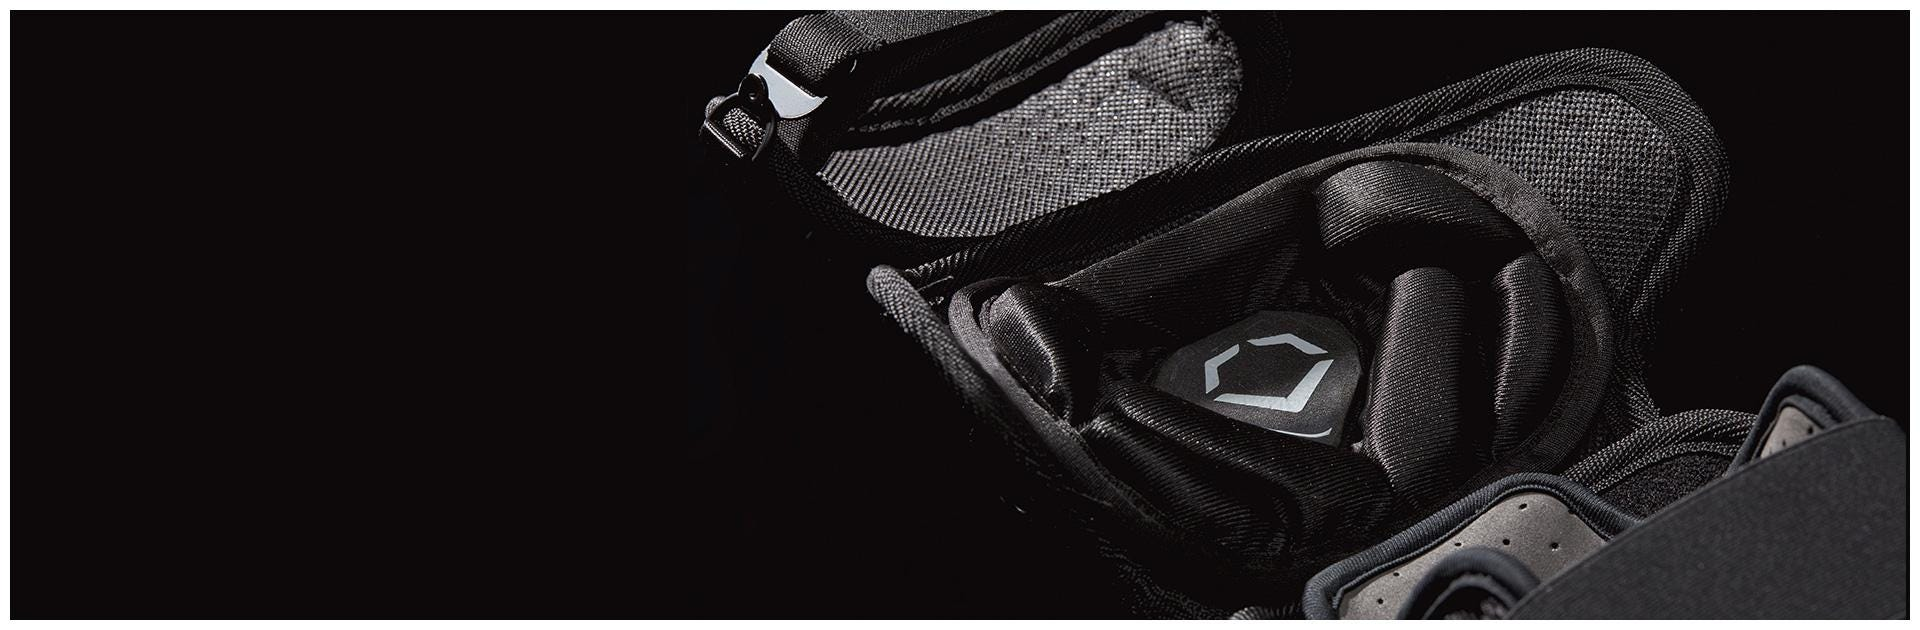 Pair it up with PRO-SRZ Upper Leg Guards